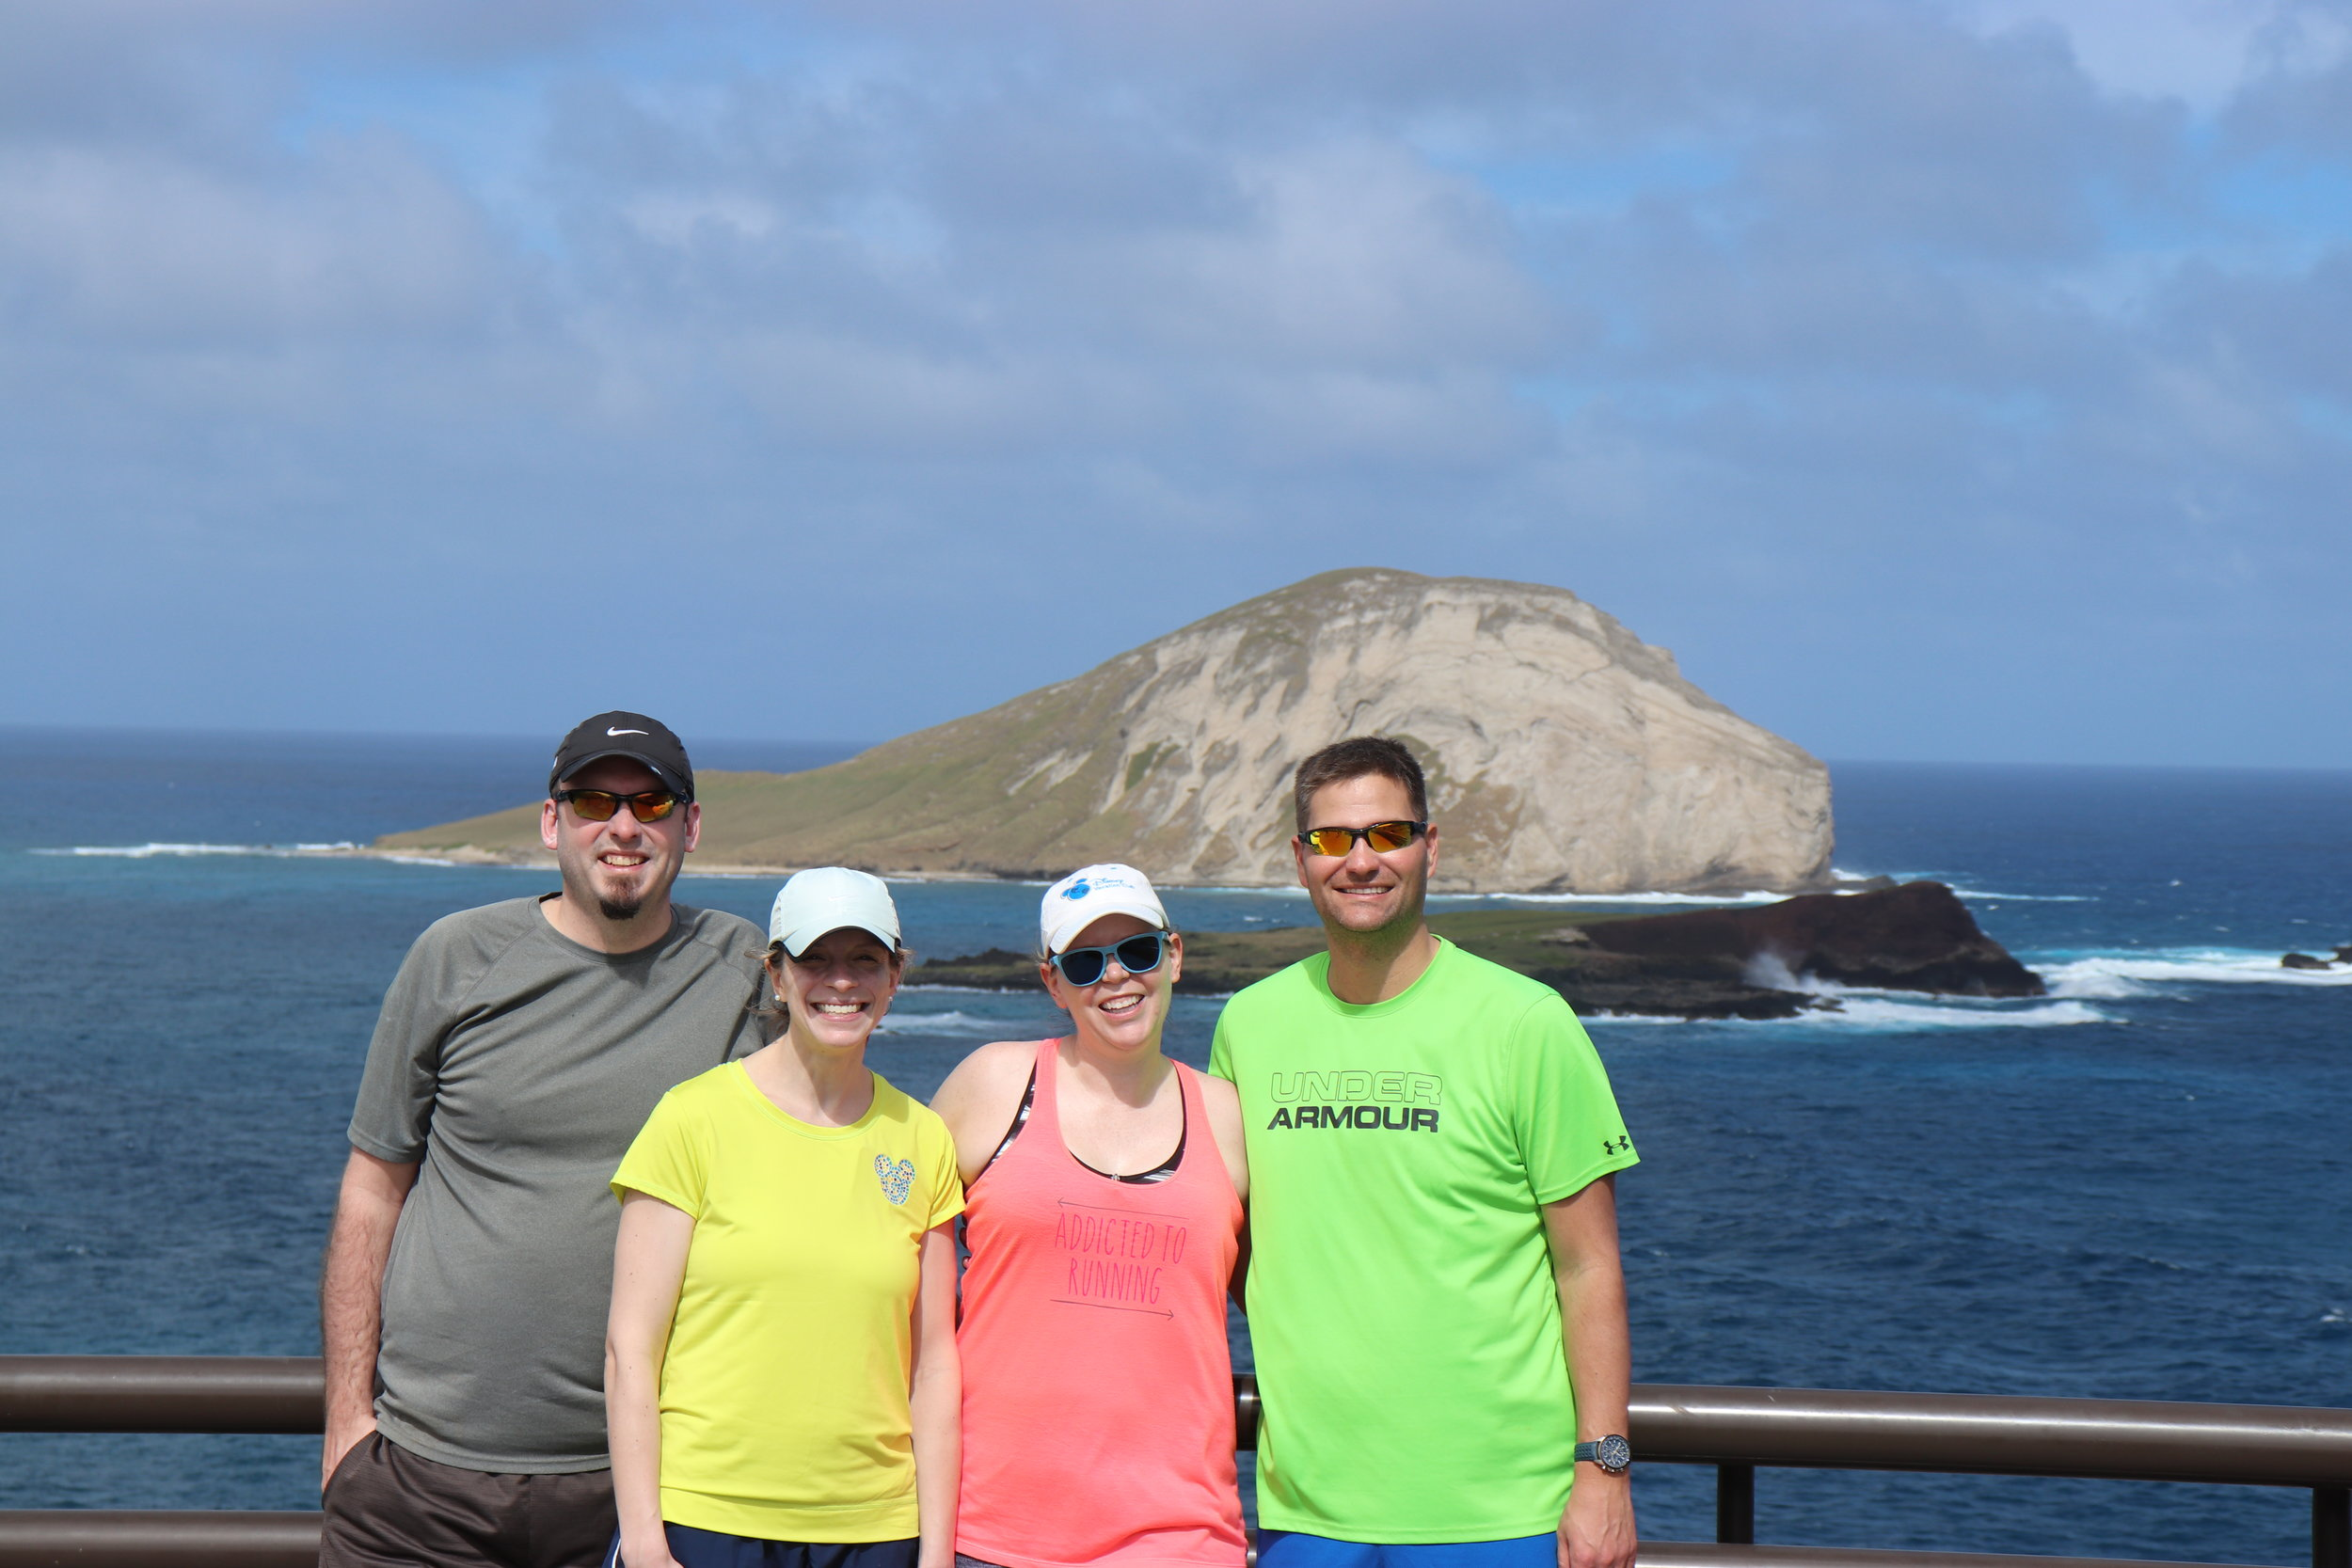 The group at Makapuu Point. (Rich must have missed the bright shirt memo.)